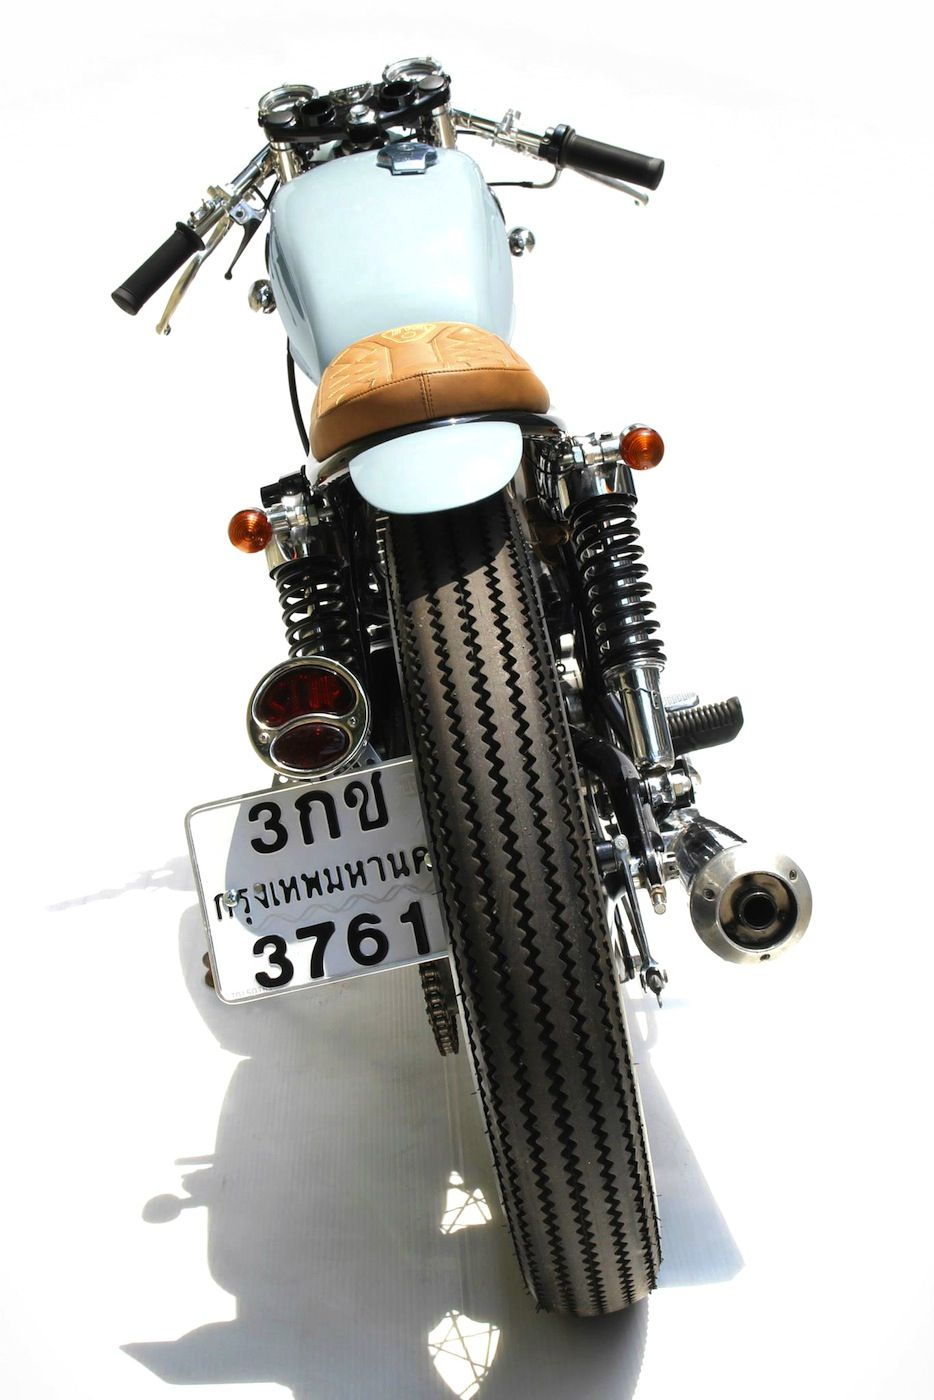 Sedia A Rotelle K100 Bluegreen Cafe Racers Pinterest Moto E Passione